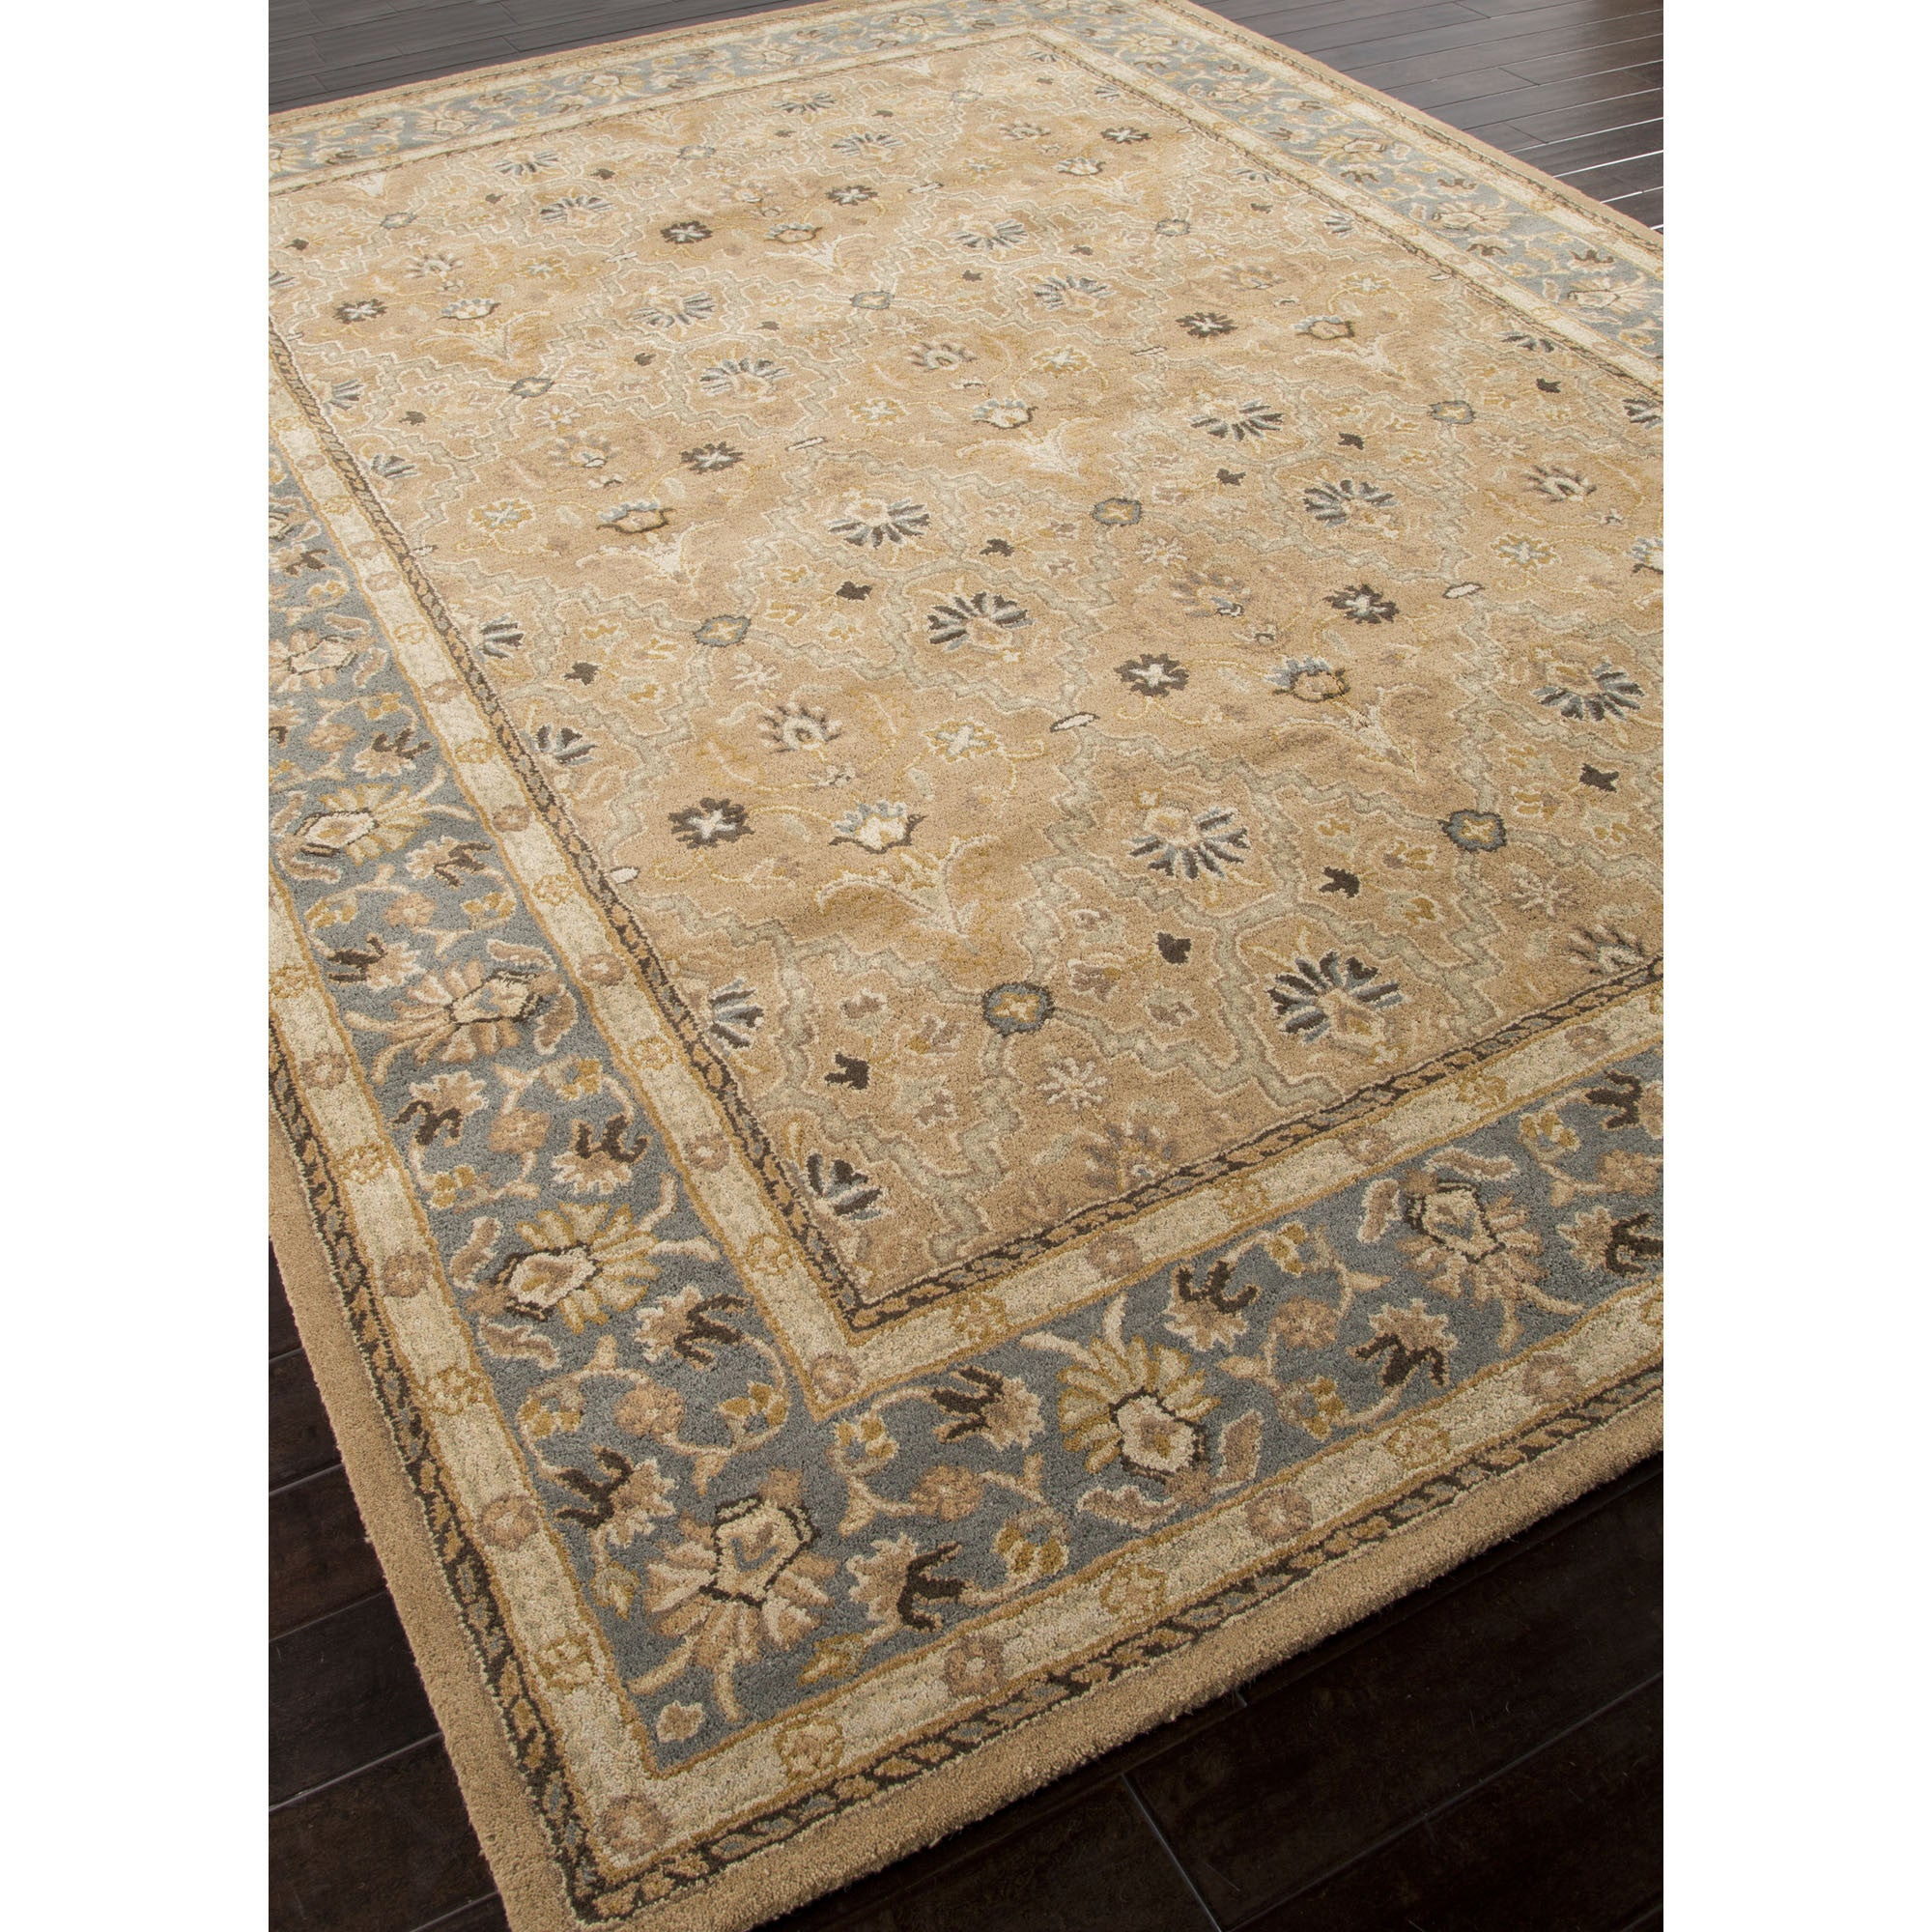 rug for runners ideas floor carpet hardwood rugs lowes chic tips area patio floors c does pads mesmerizing much decoration pad padding how outdoor